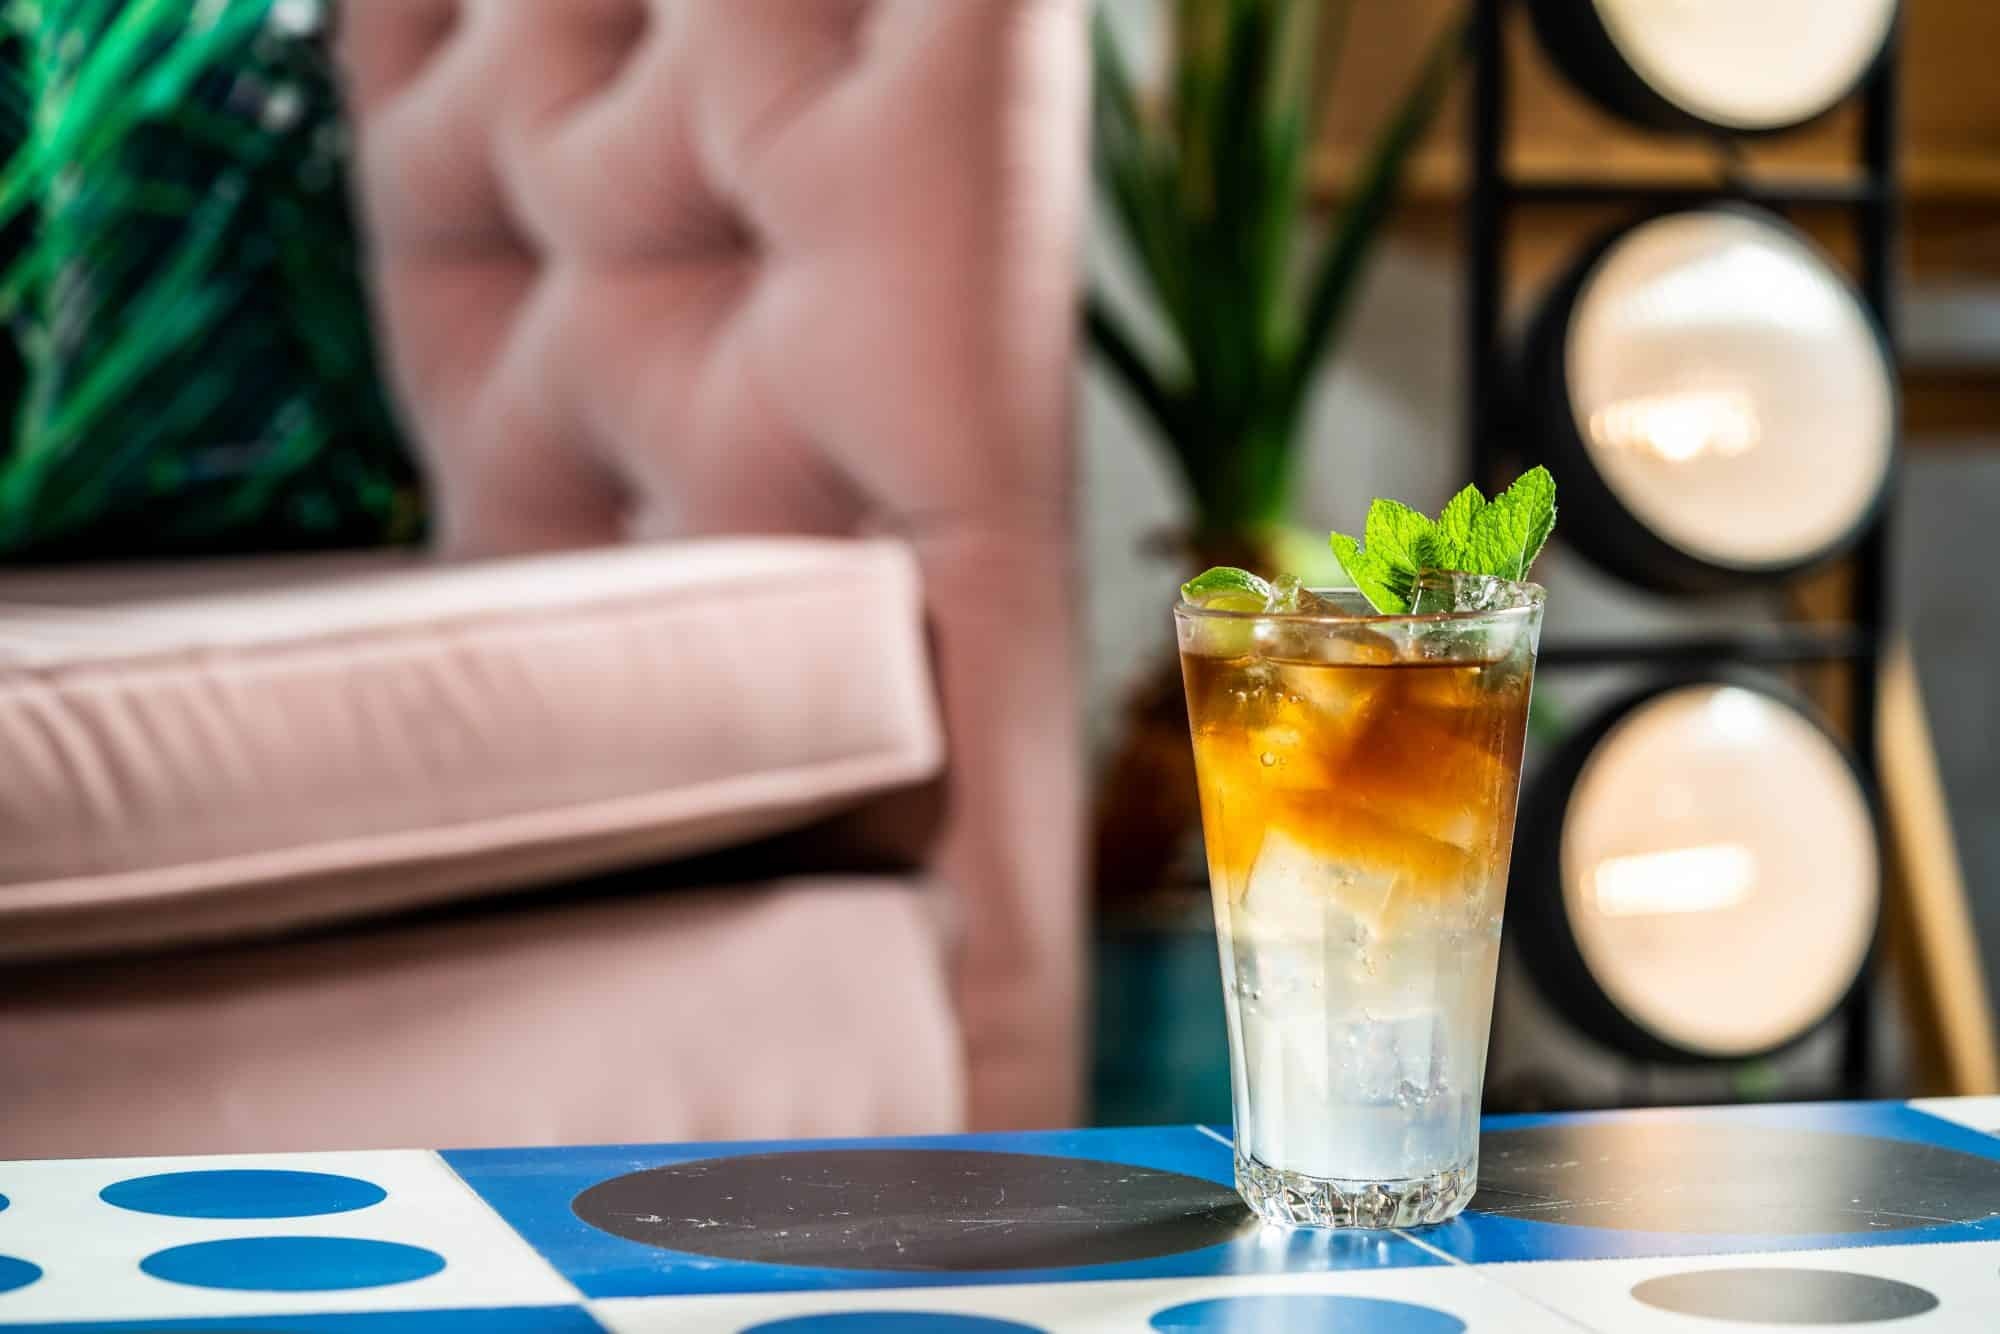 Dutch and Stormy made with Spice & Sea Salt Botanical Rum with Fever Tree Ginger Beer